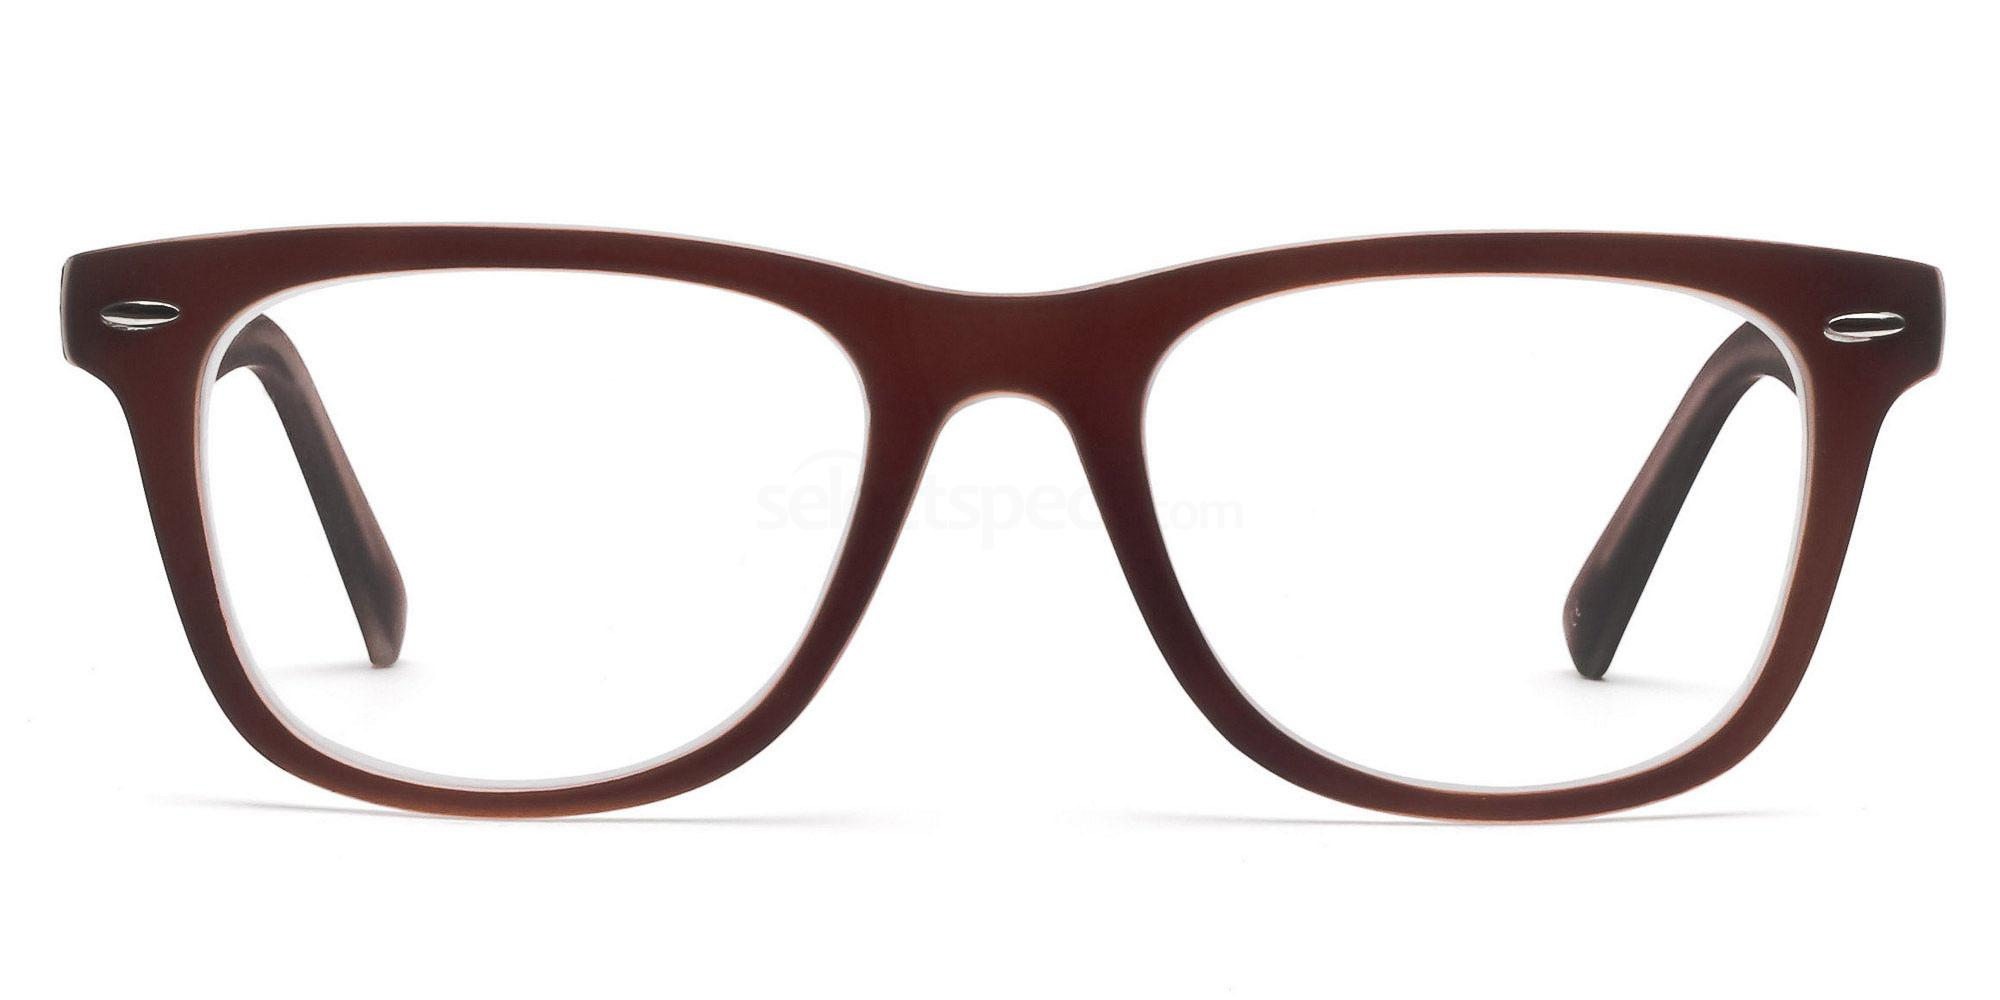 C8 8121 - Brown Glasses, Savannah